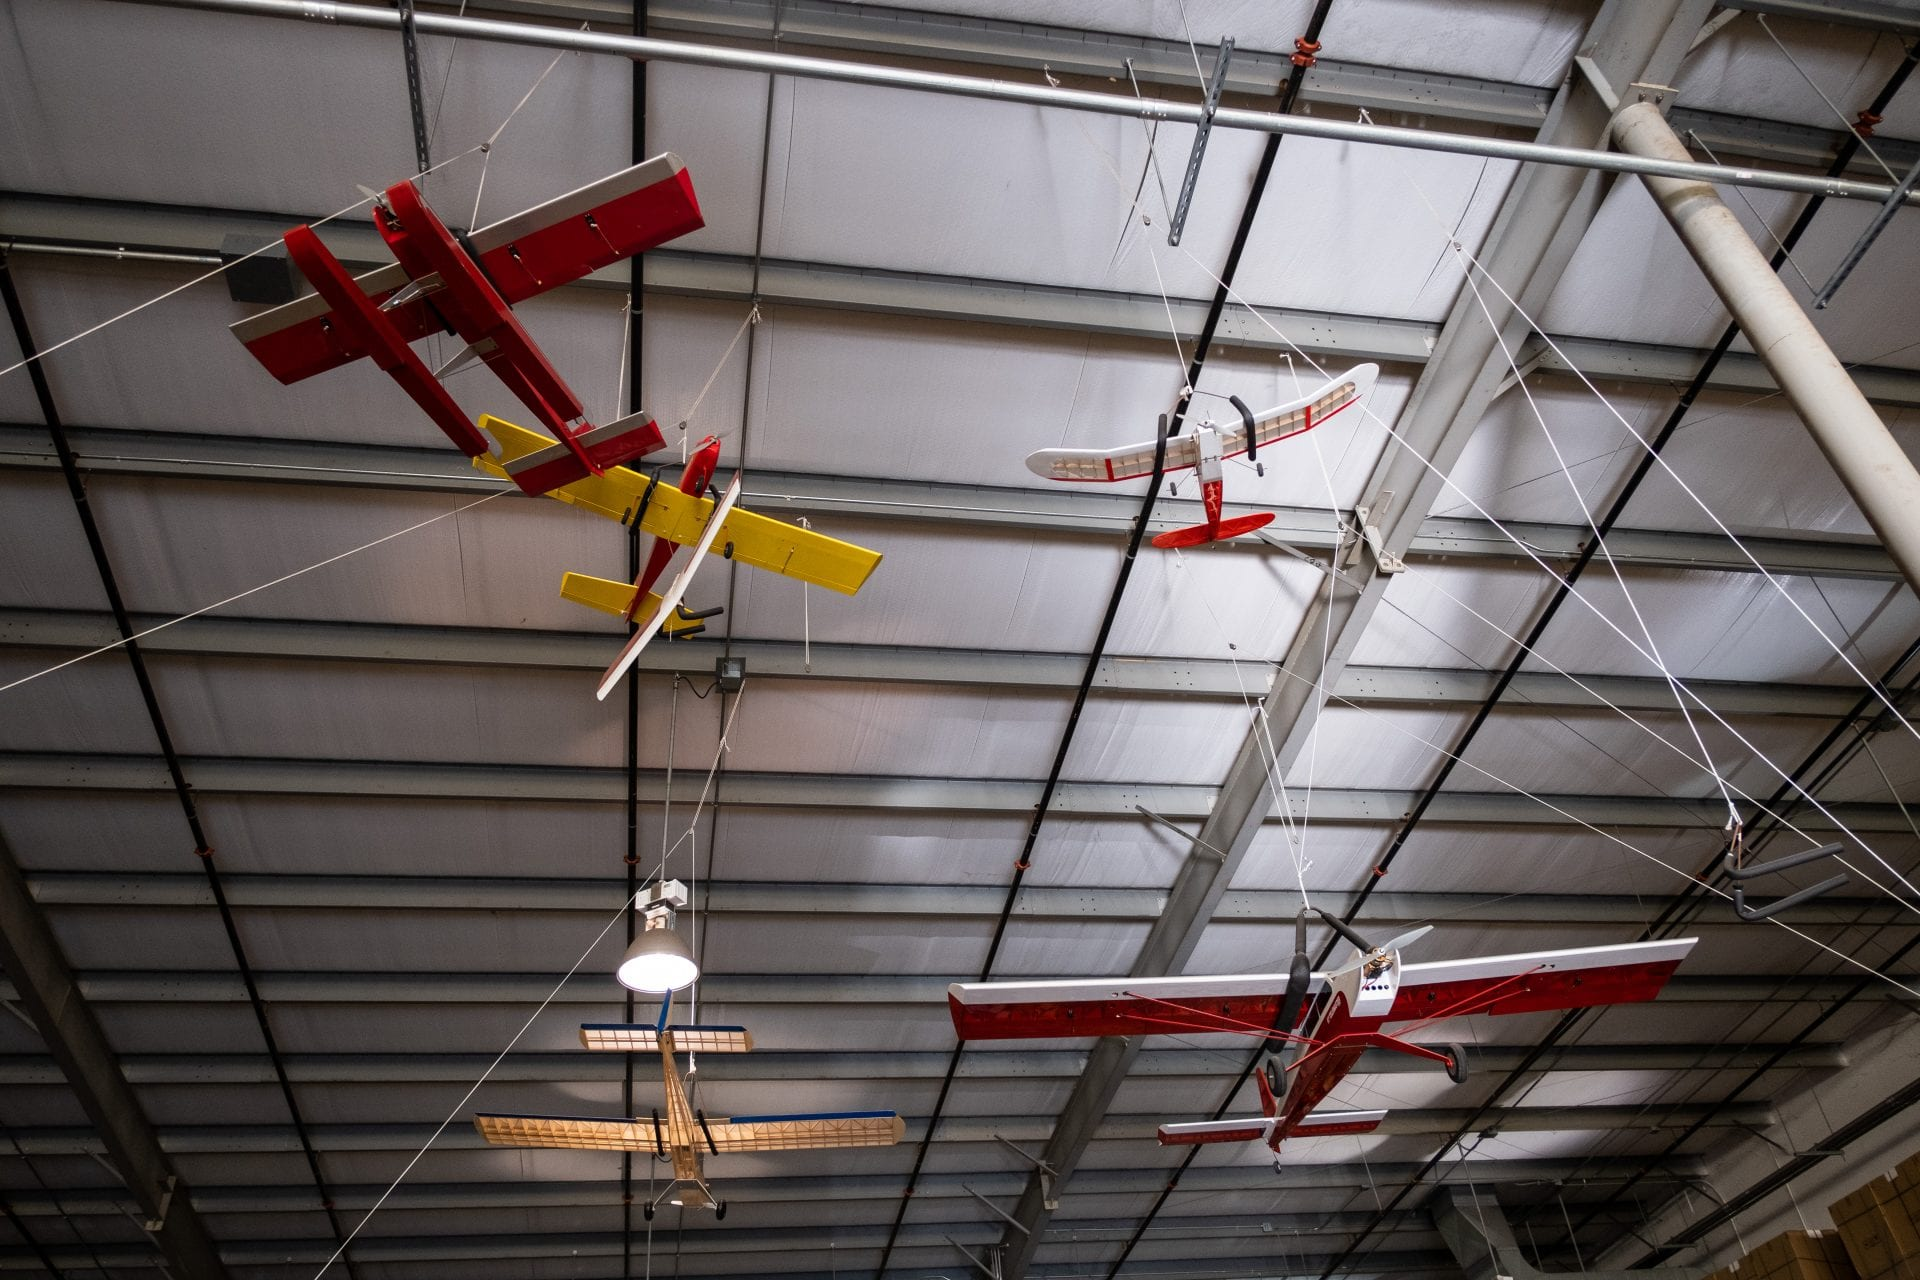 Model Airplanes in the rafters of a Large Warehouse Distribution Center